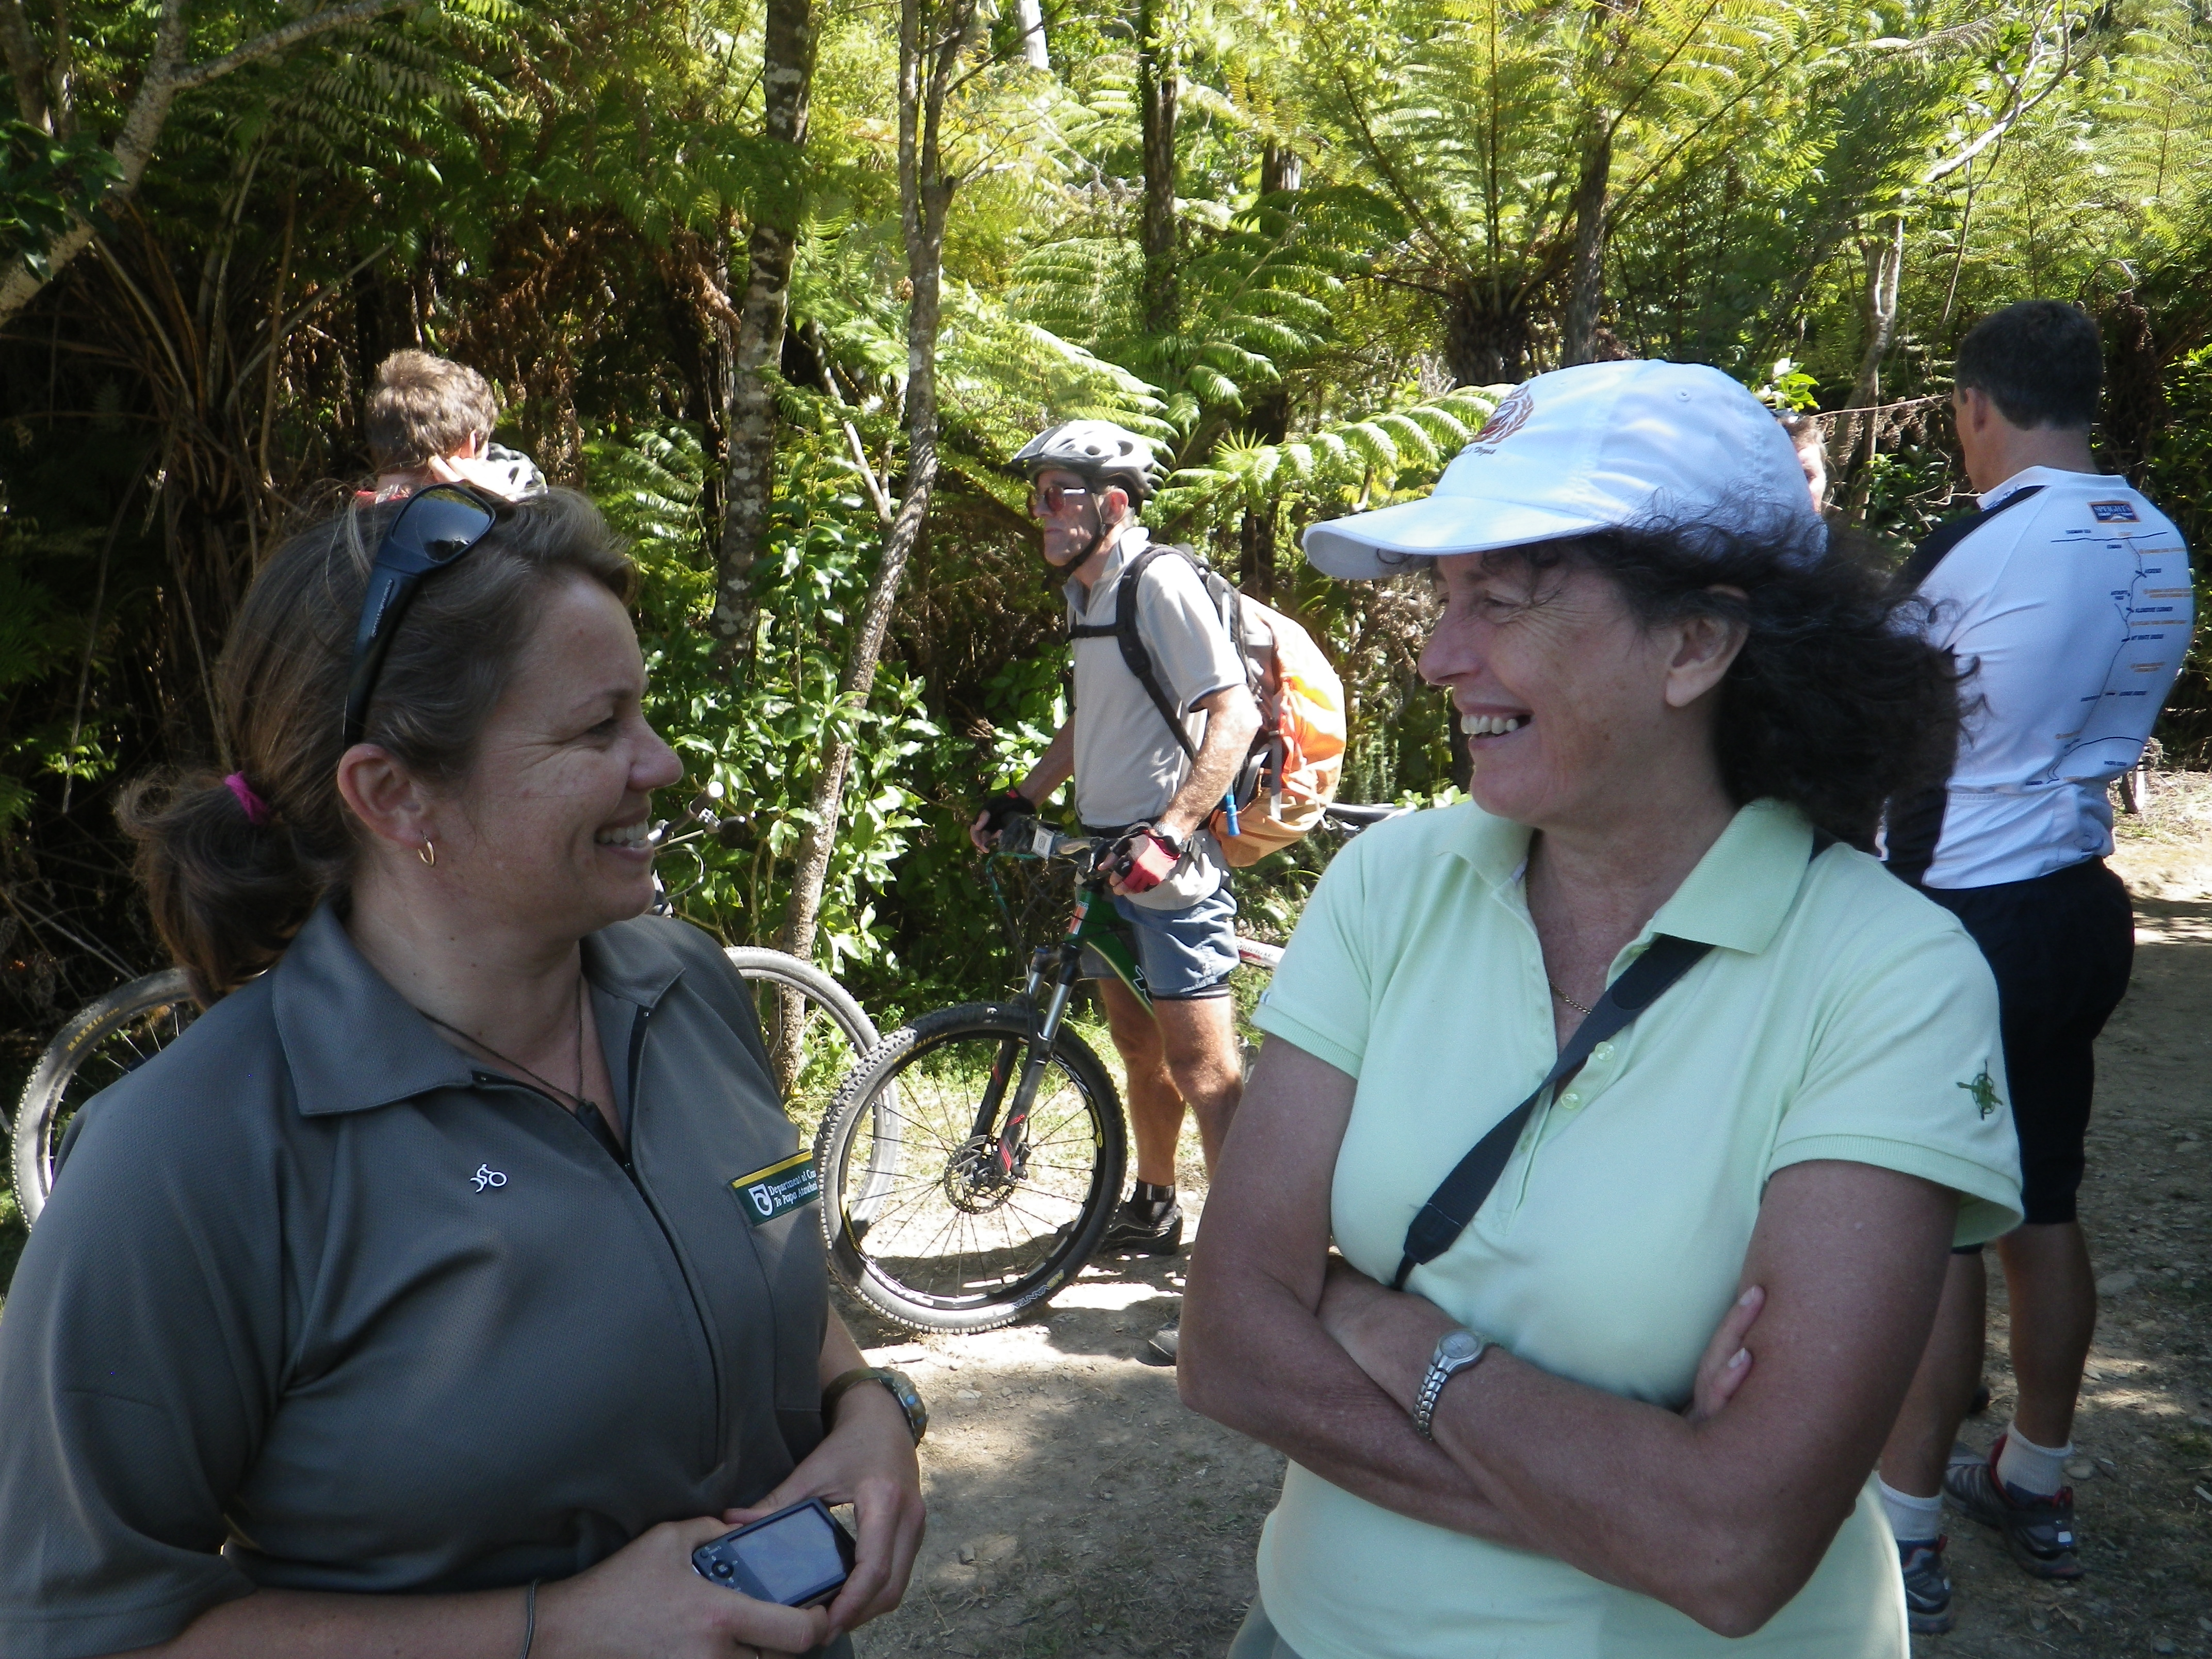 Queen Charlotte Track: A partnership with many